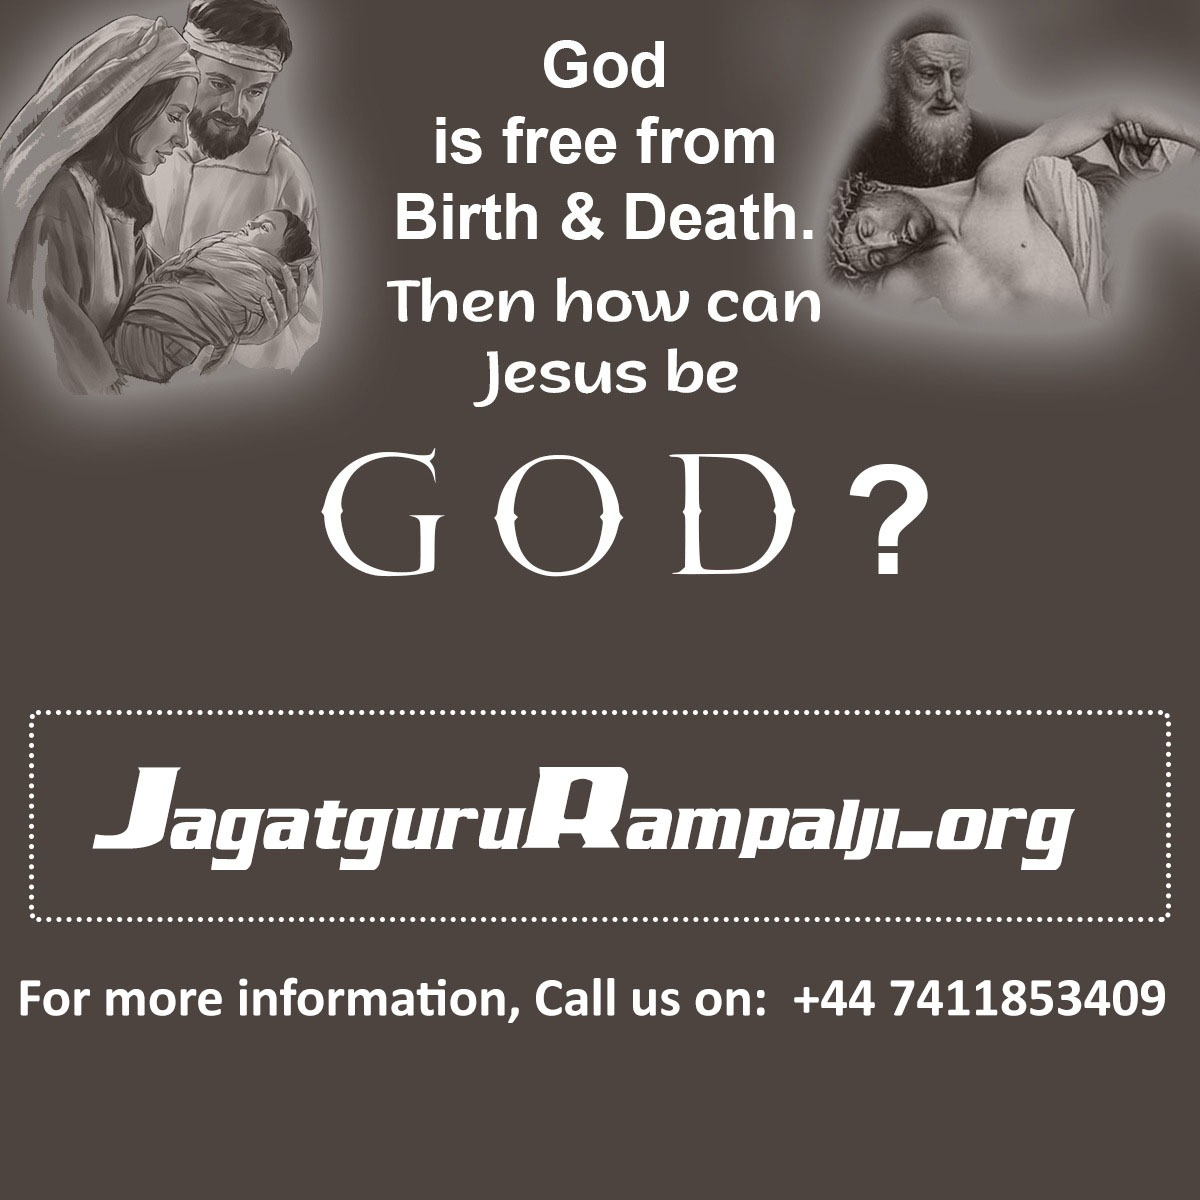 """#TuesdayThoughts  Holy Bible says   """"God is Kabir""""  Orthodox Jewish Bible (OJB), Iyov 36:5  See, EI is Kabir, and despiseth not any; He is Kabir in ko'ach lev (strength of understanding). <br>http://pic.twitter.com/0gmbNueBSR"""